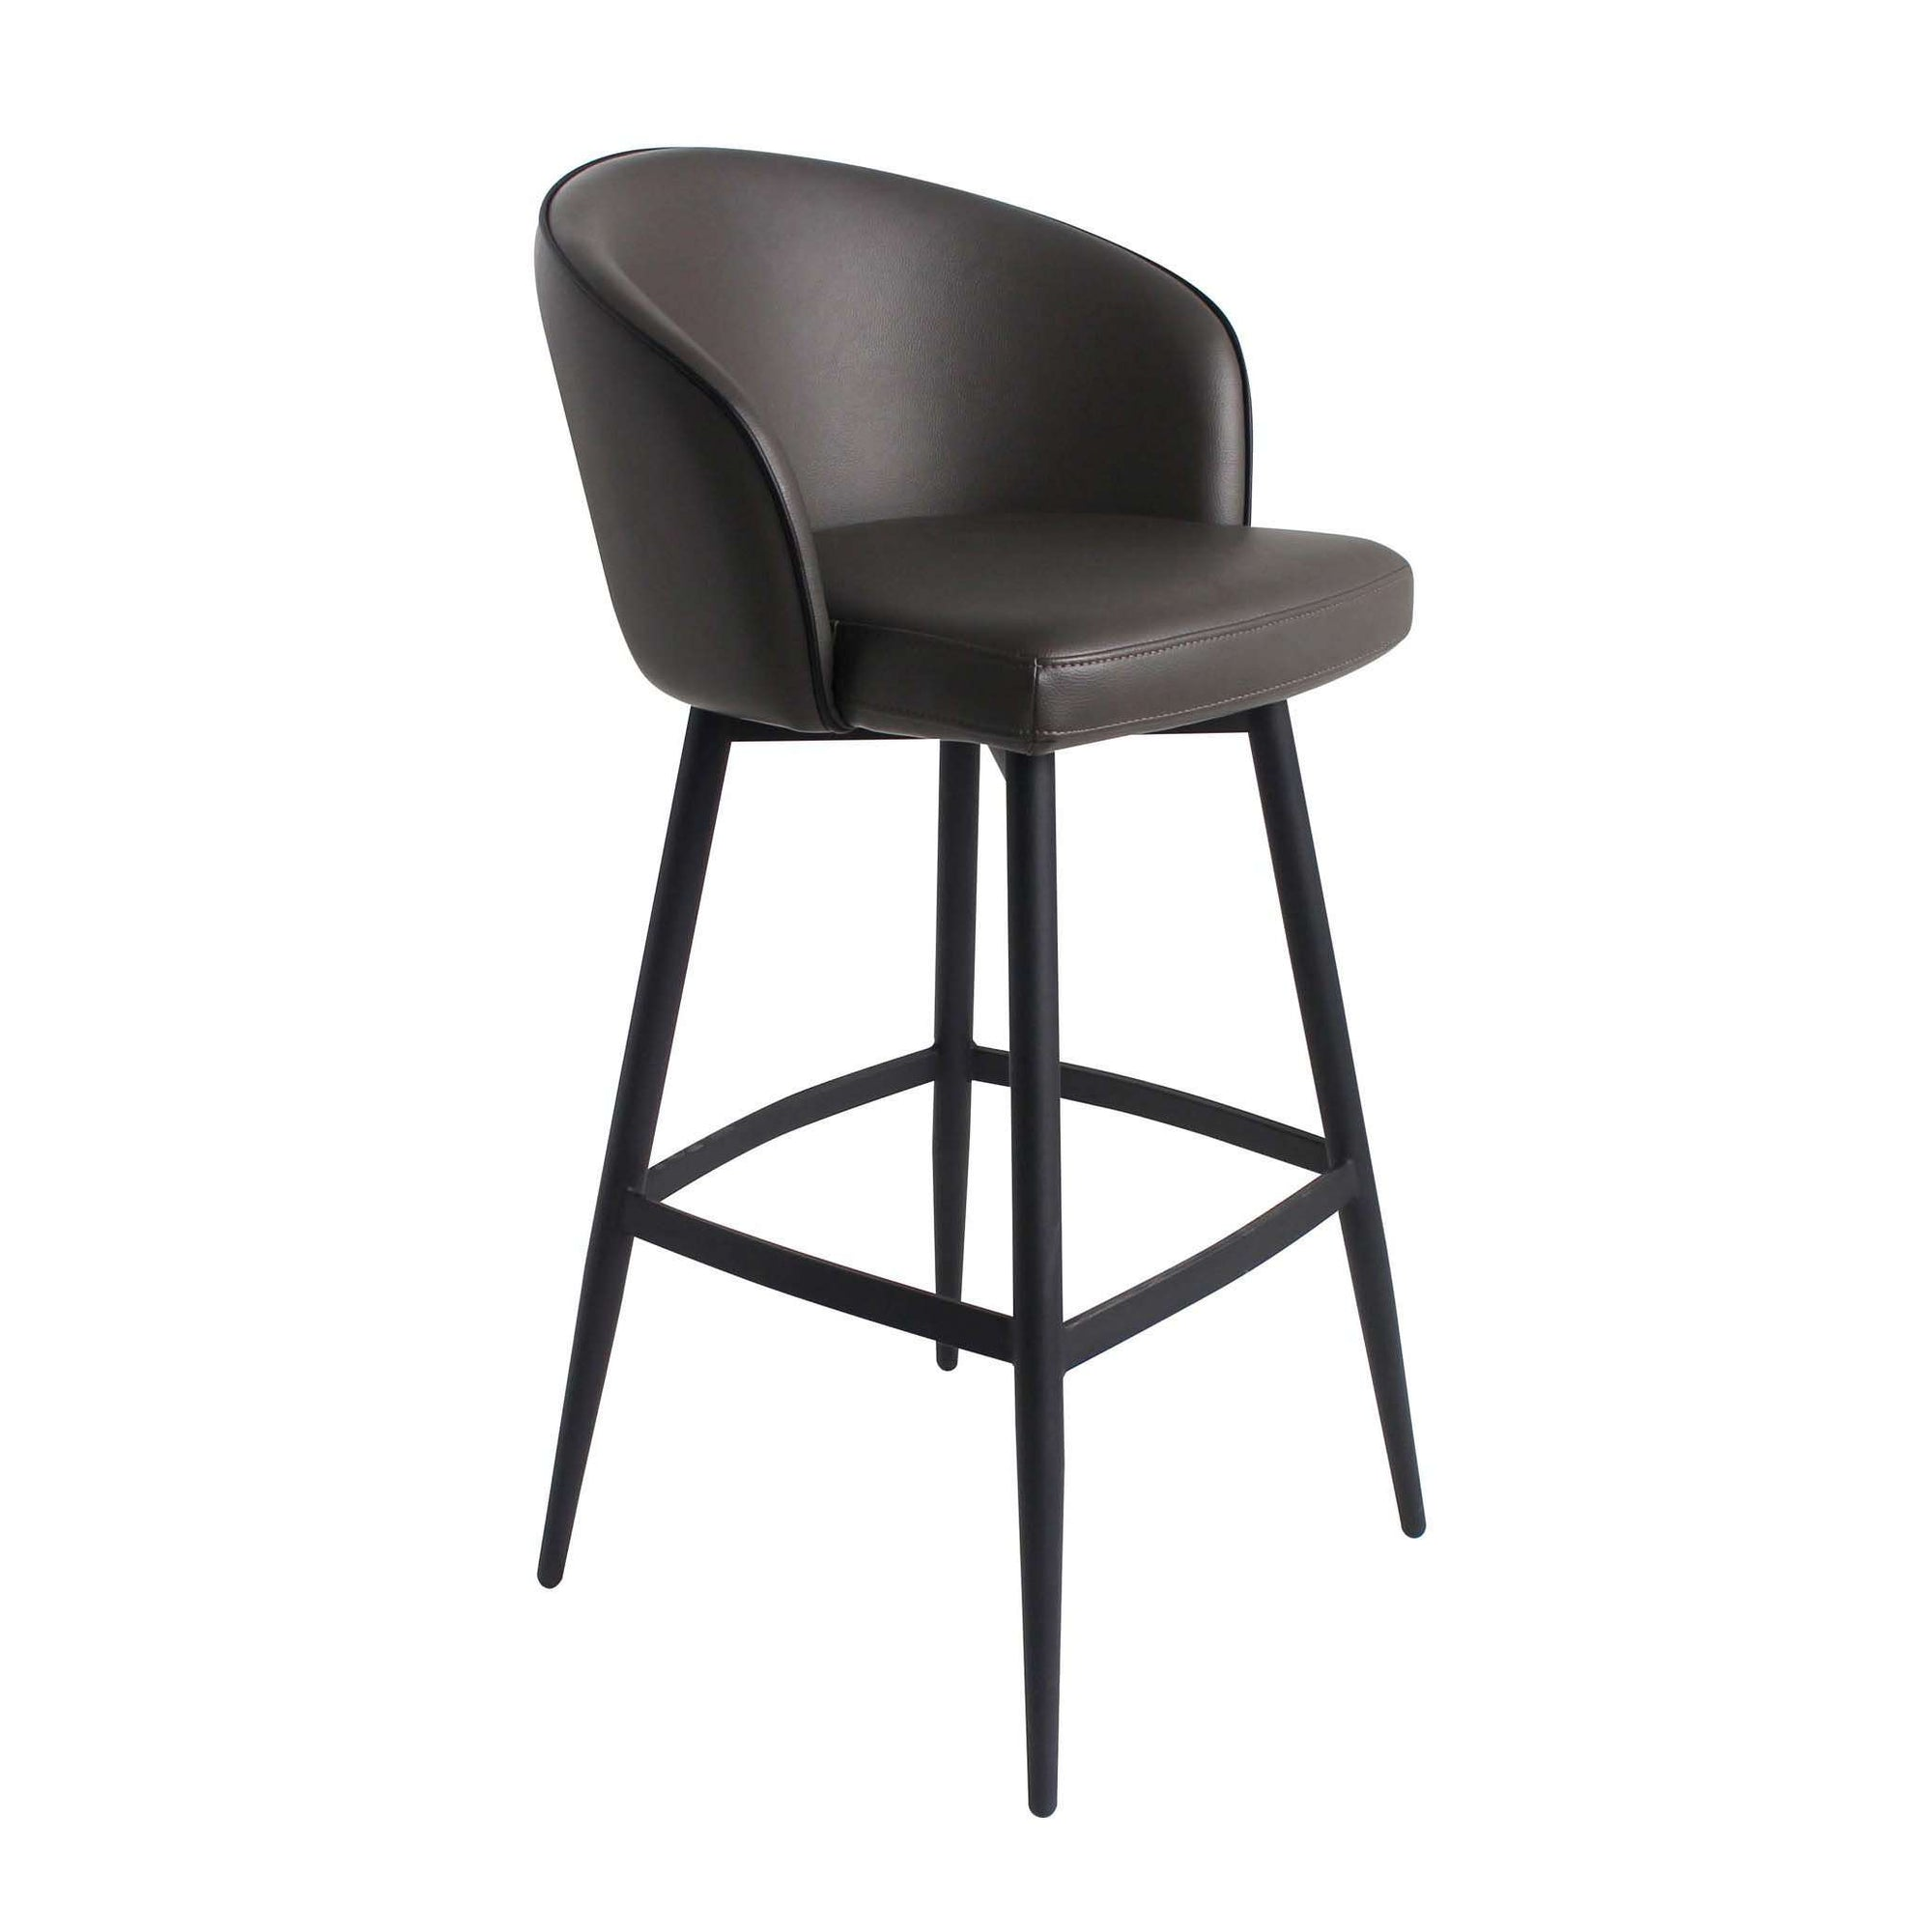 MOES-WEBBER BAR STOOL CHARCOAL-None-MODTEMPO